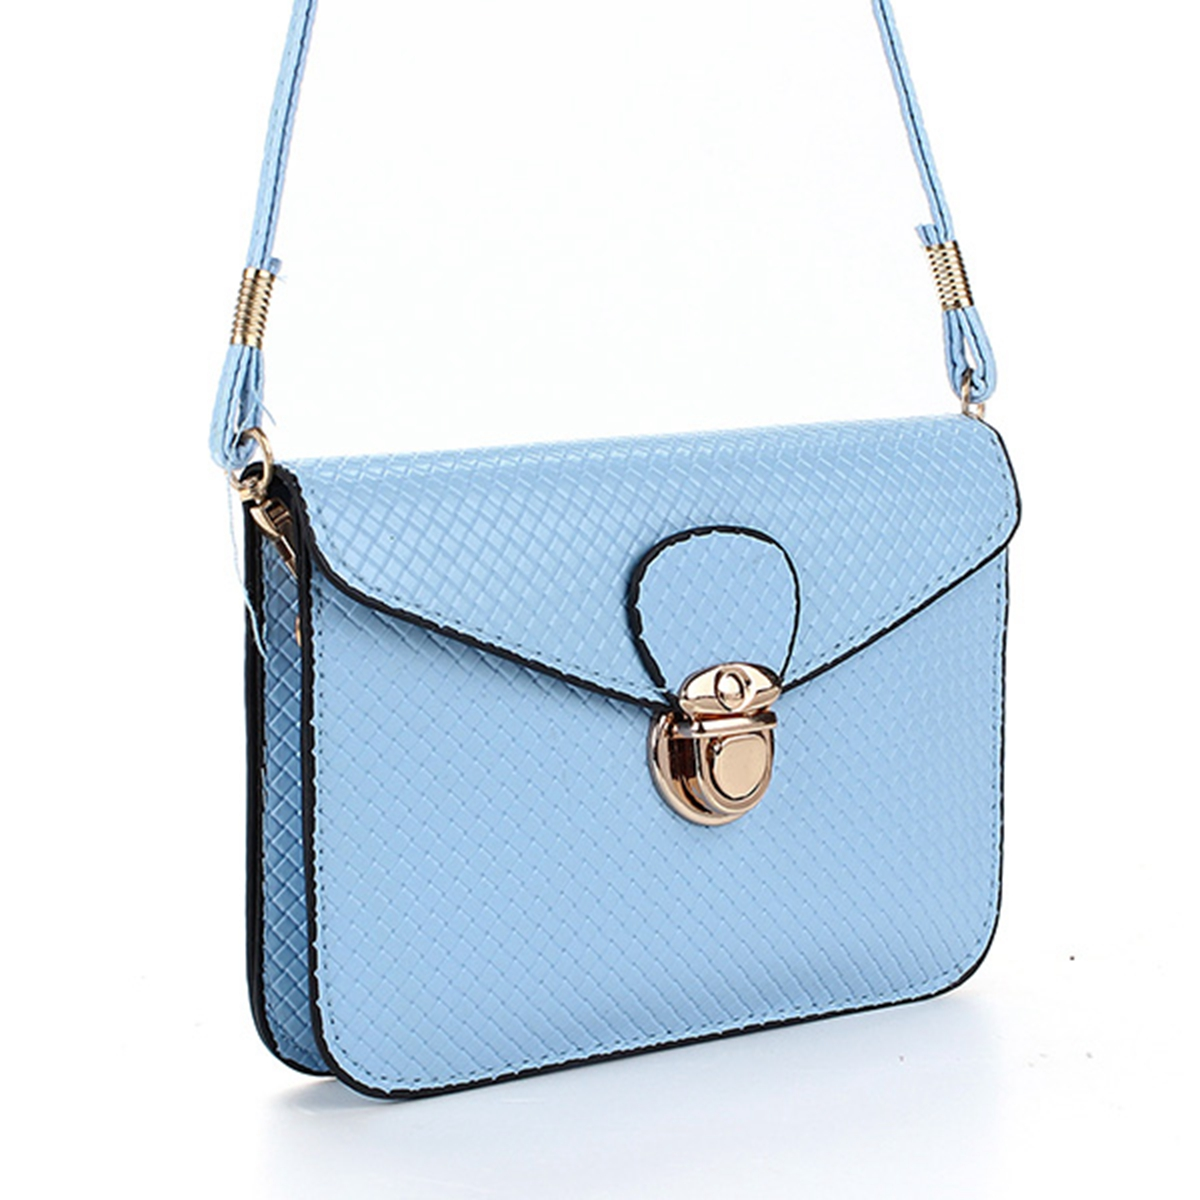 Women Handbag Shoulder Tote Purse Leather Women Messenger Lattice Phone Bag Girl